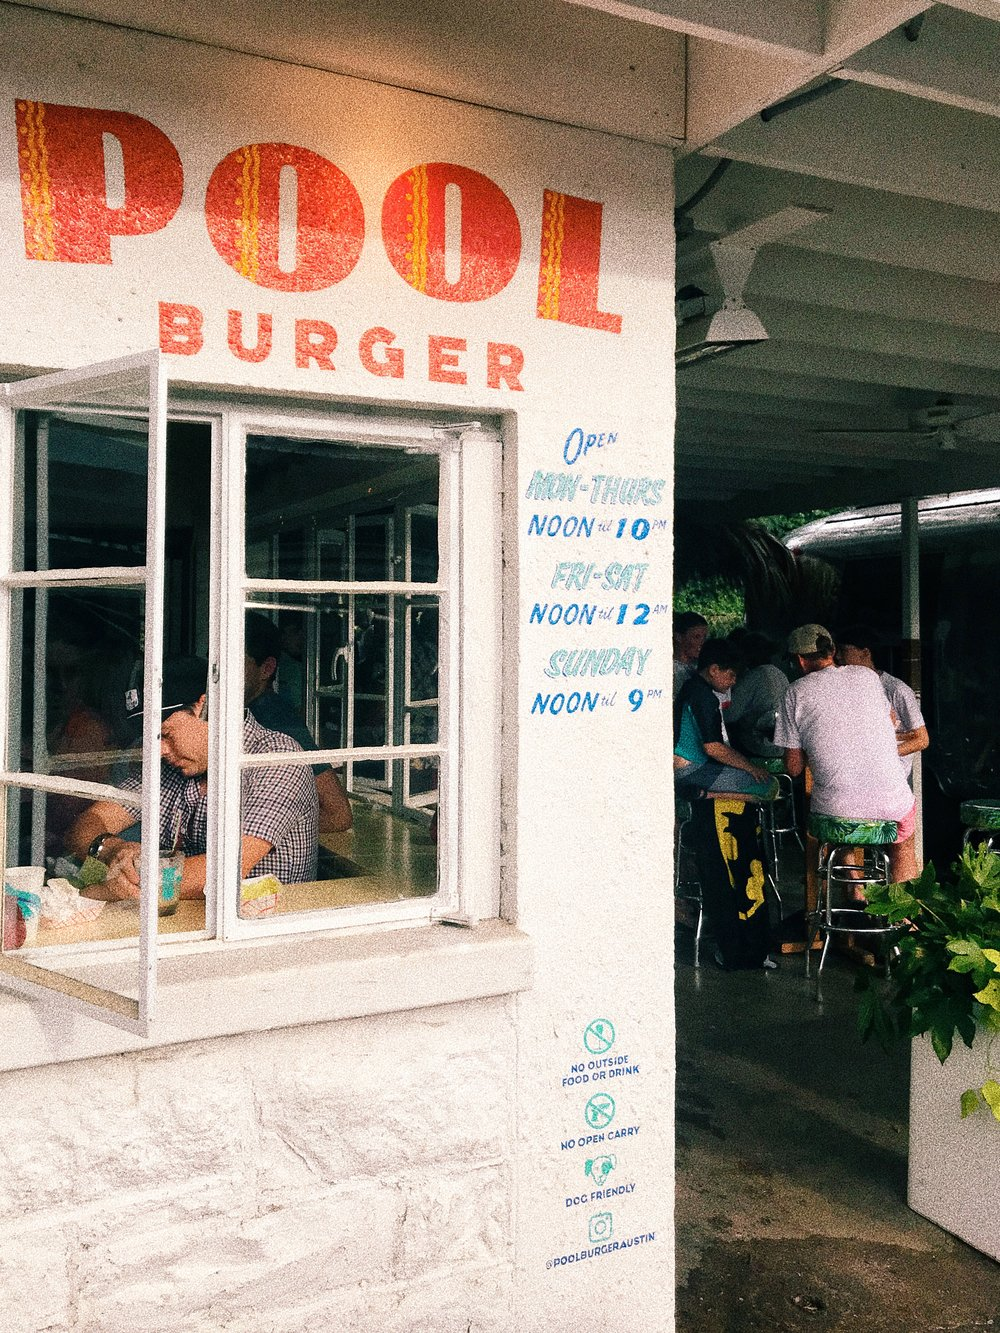 Best Cocktails in Austin - Pool Burger - www.tresgigi.com